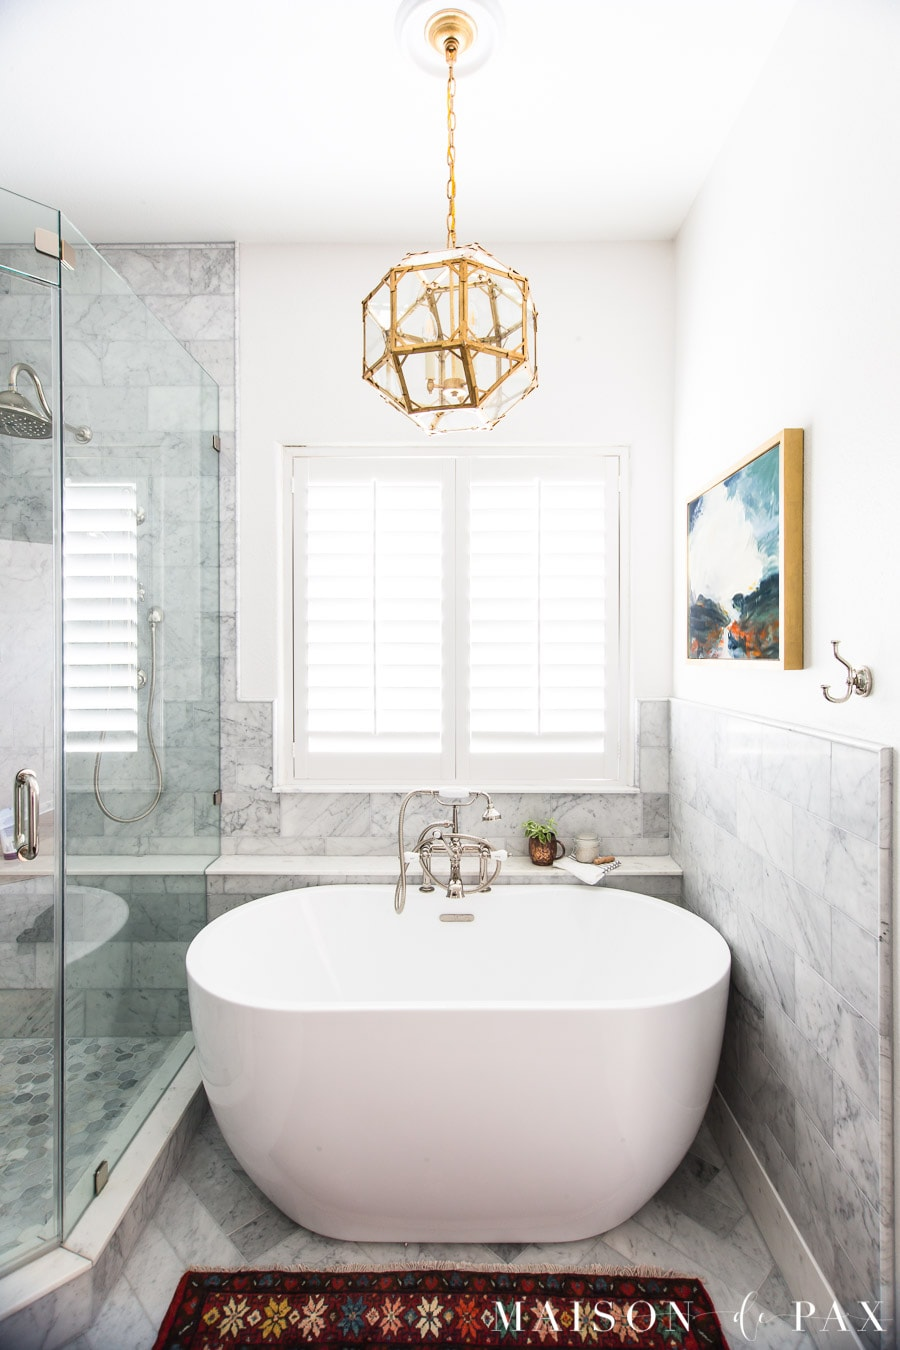 marble bathroom with freestanding tub, vintage rug, and abstract wall art   Maison de Pax